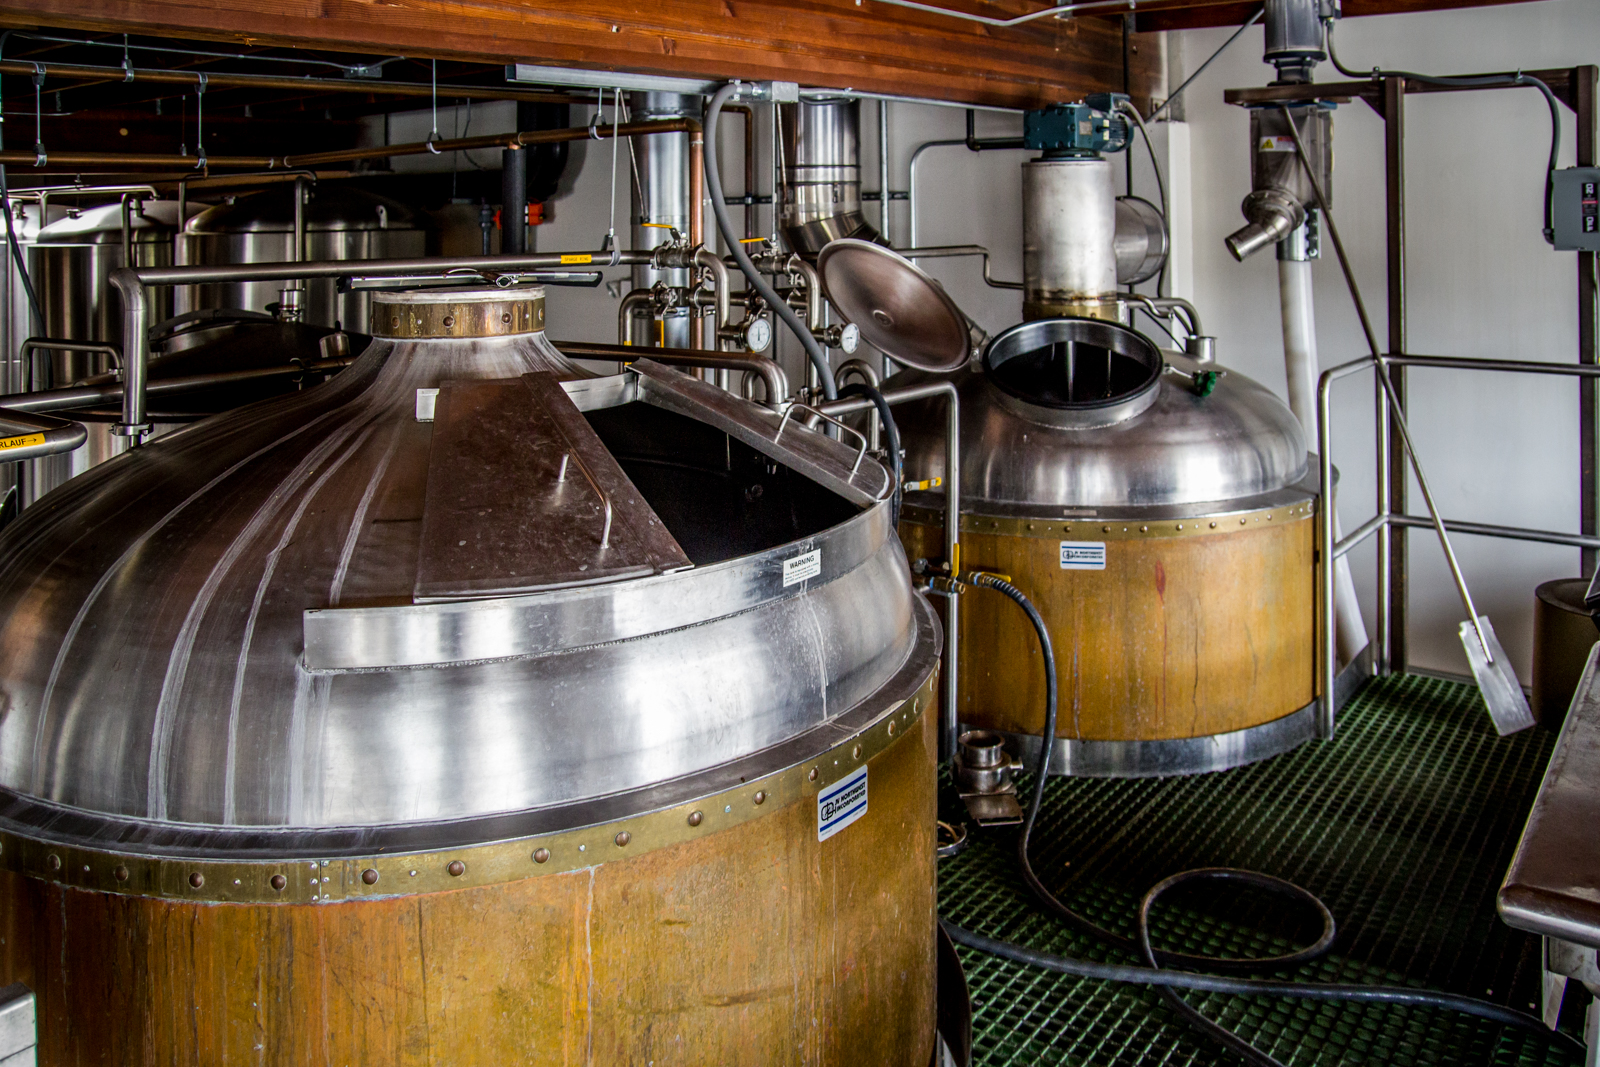 The Brewhouse at Barley Forge